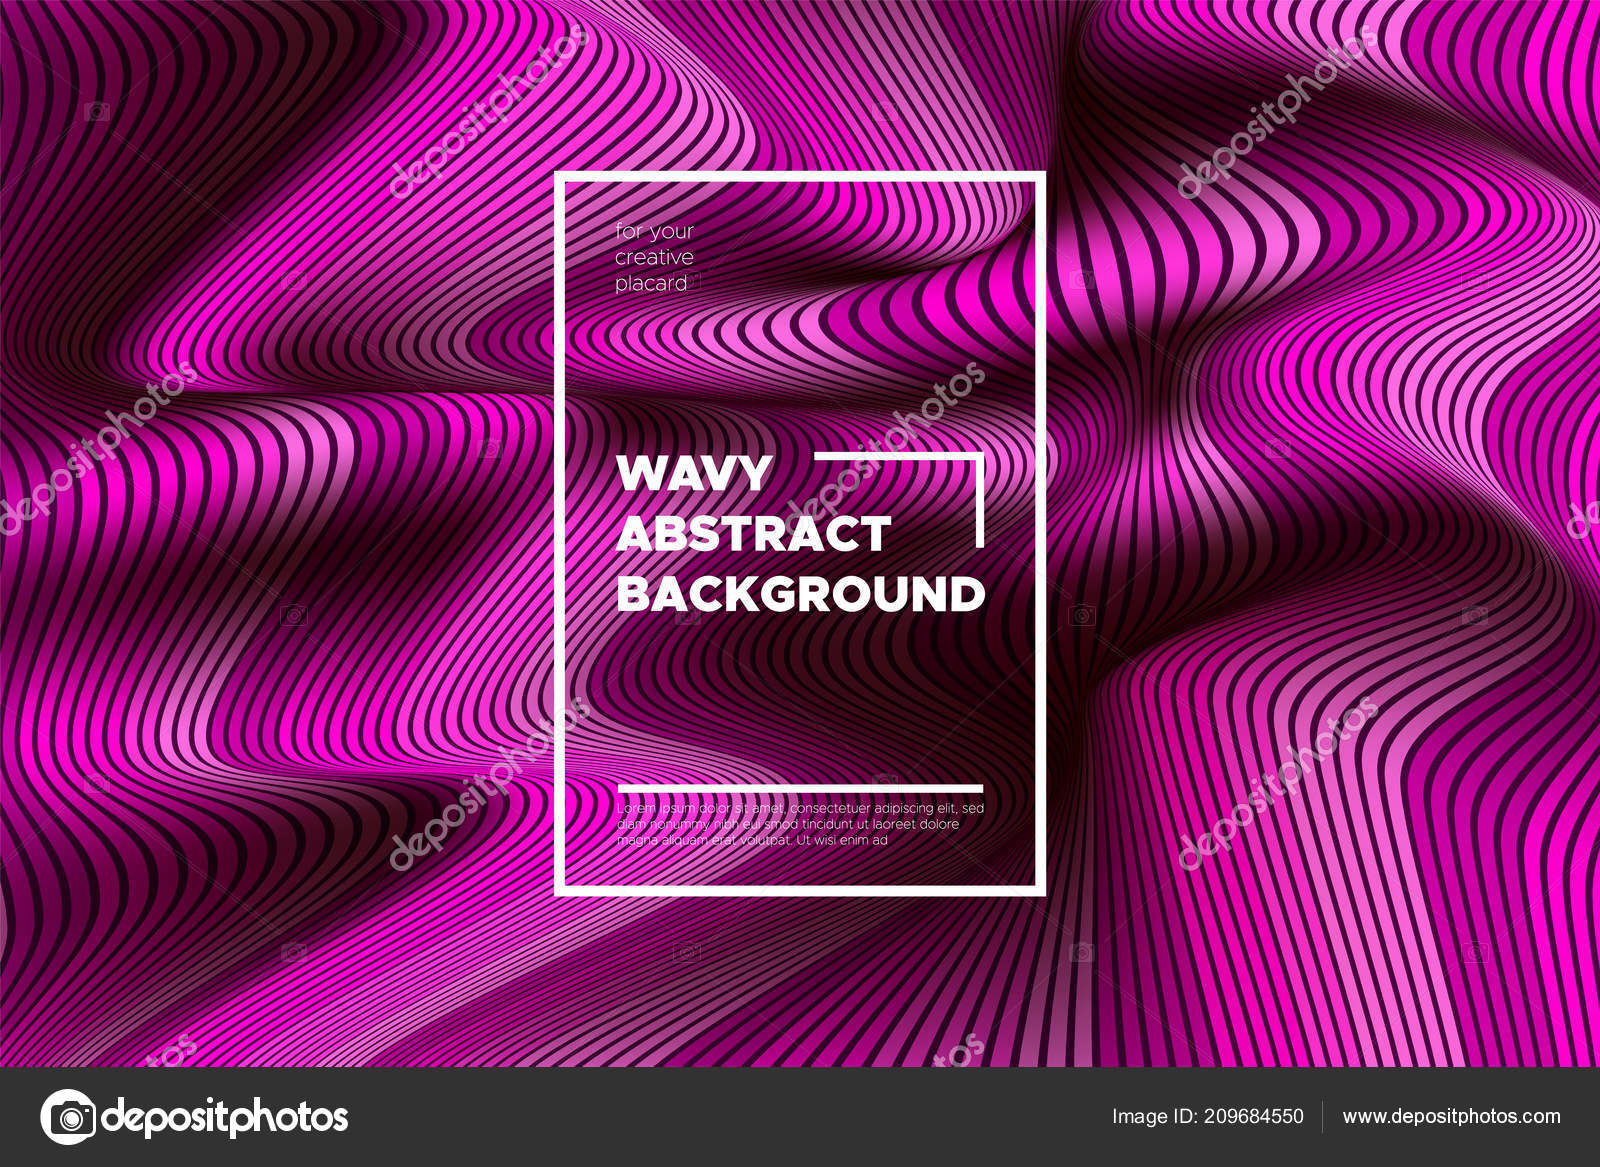 pink wave poster abstract geometric background with bright wave lines in futuristic style